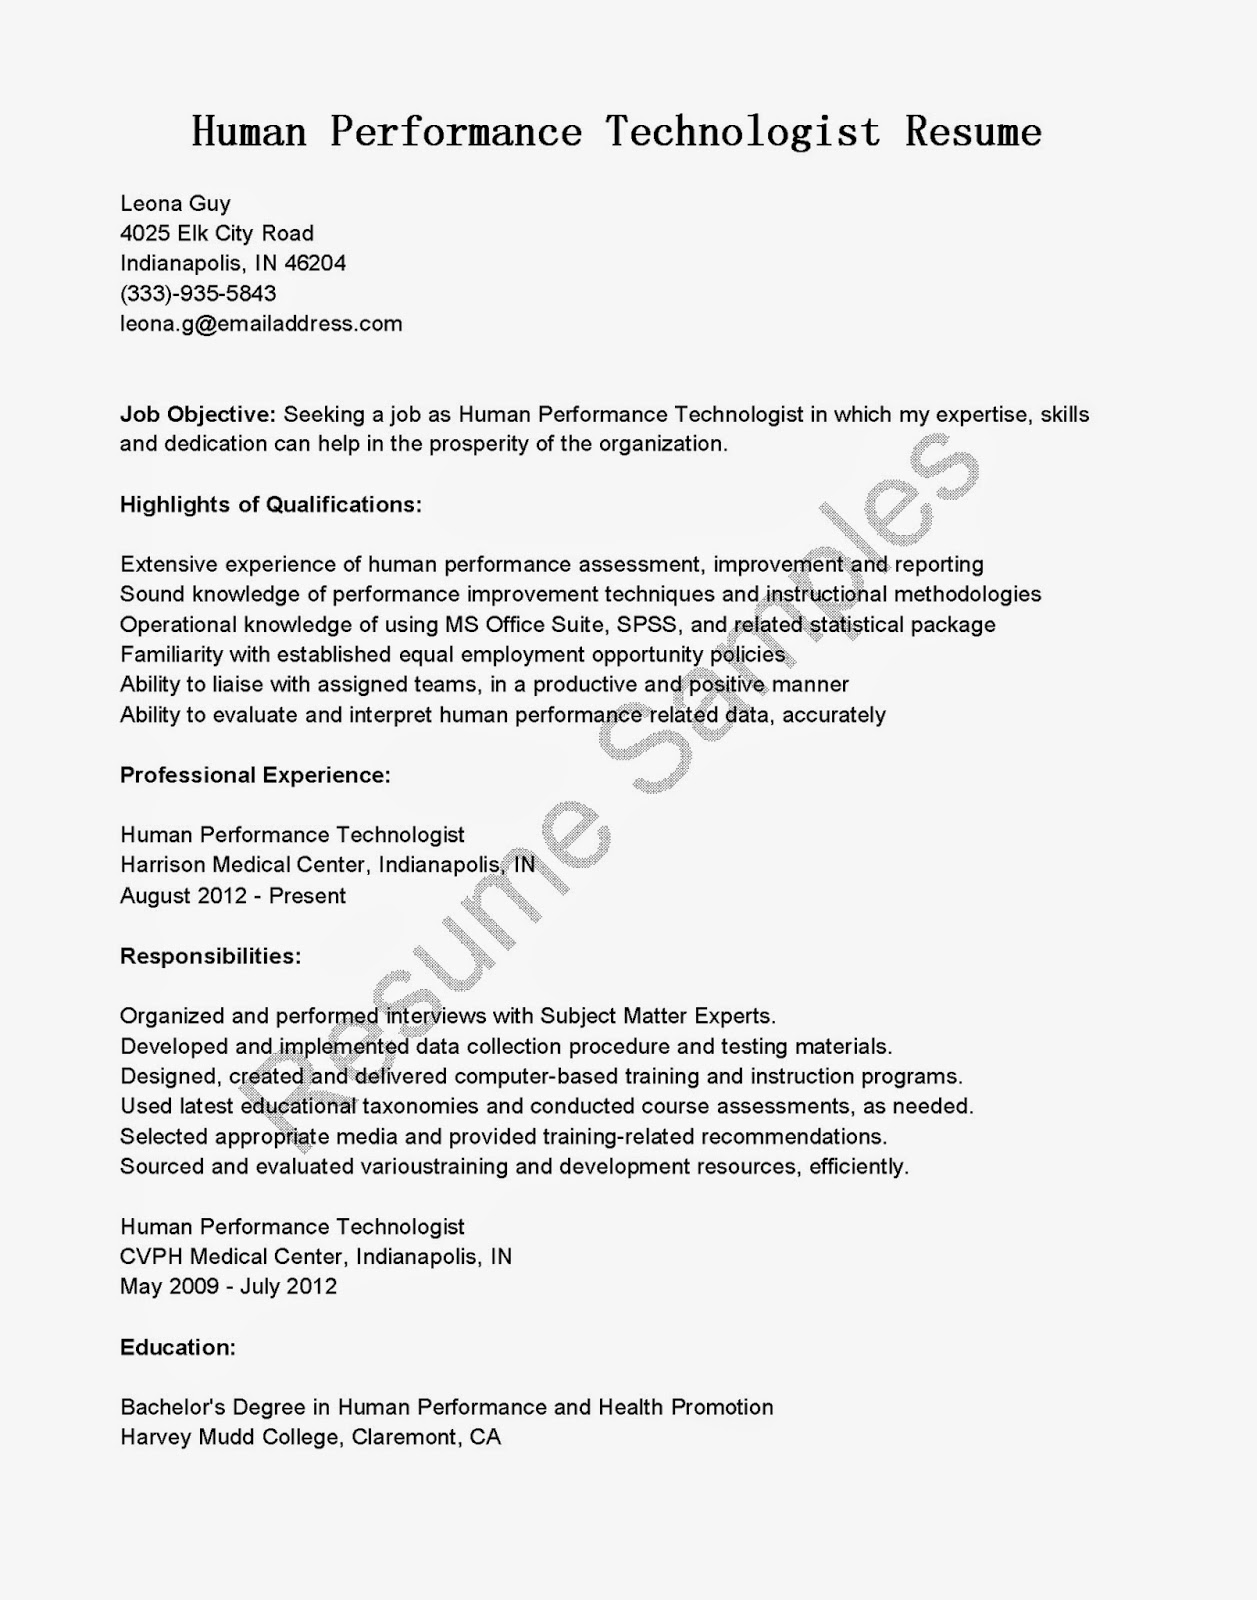 resume samples human performance technologist resume sample. Black Bedroom Furniture Sets. Home Design Ideas